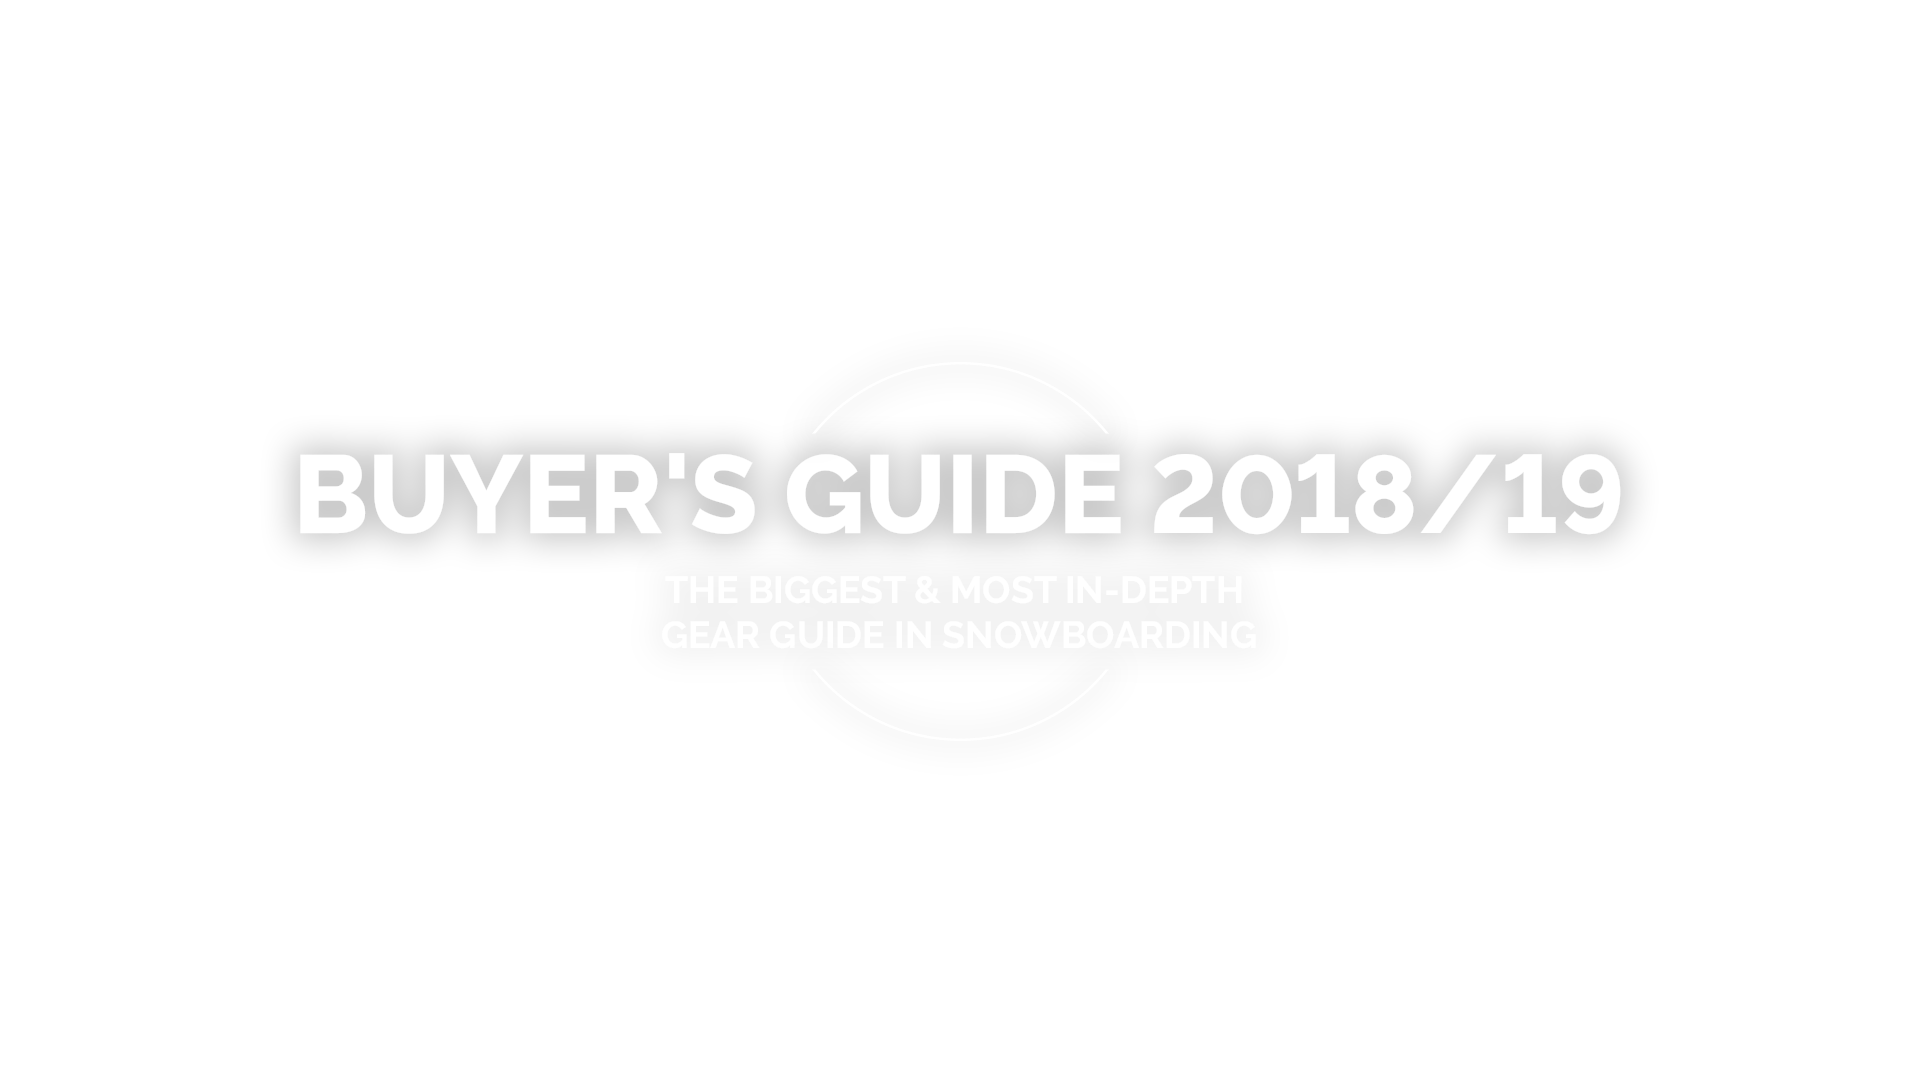 Buyers Guide 2018/19